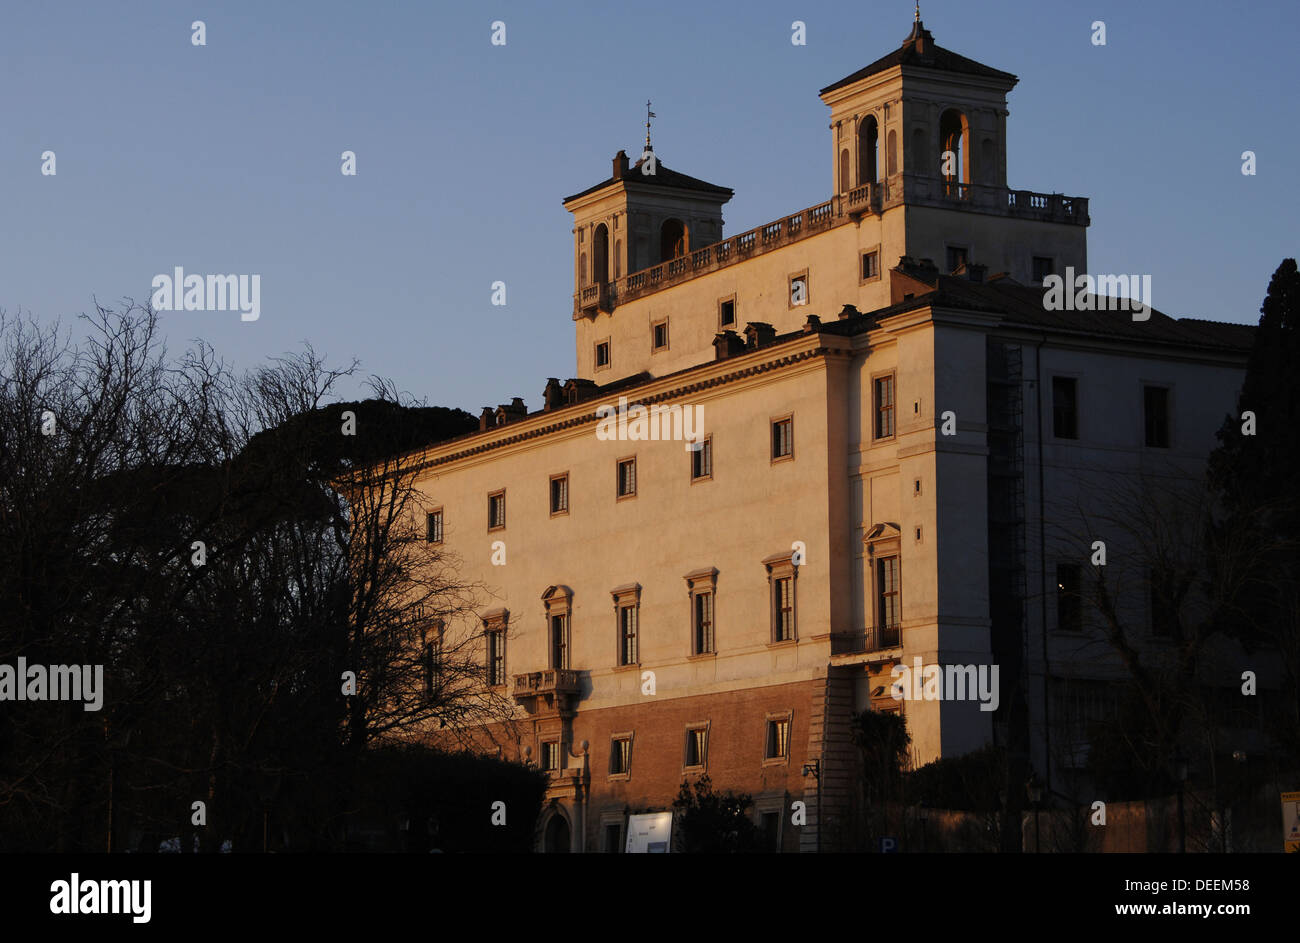 Italy. Rome. Medici's Villa. Founded by Ferdinand I Medici. 16th century. Built by Annibale Lippi. Exterior. - Stock Image